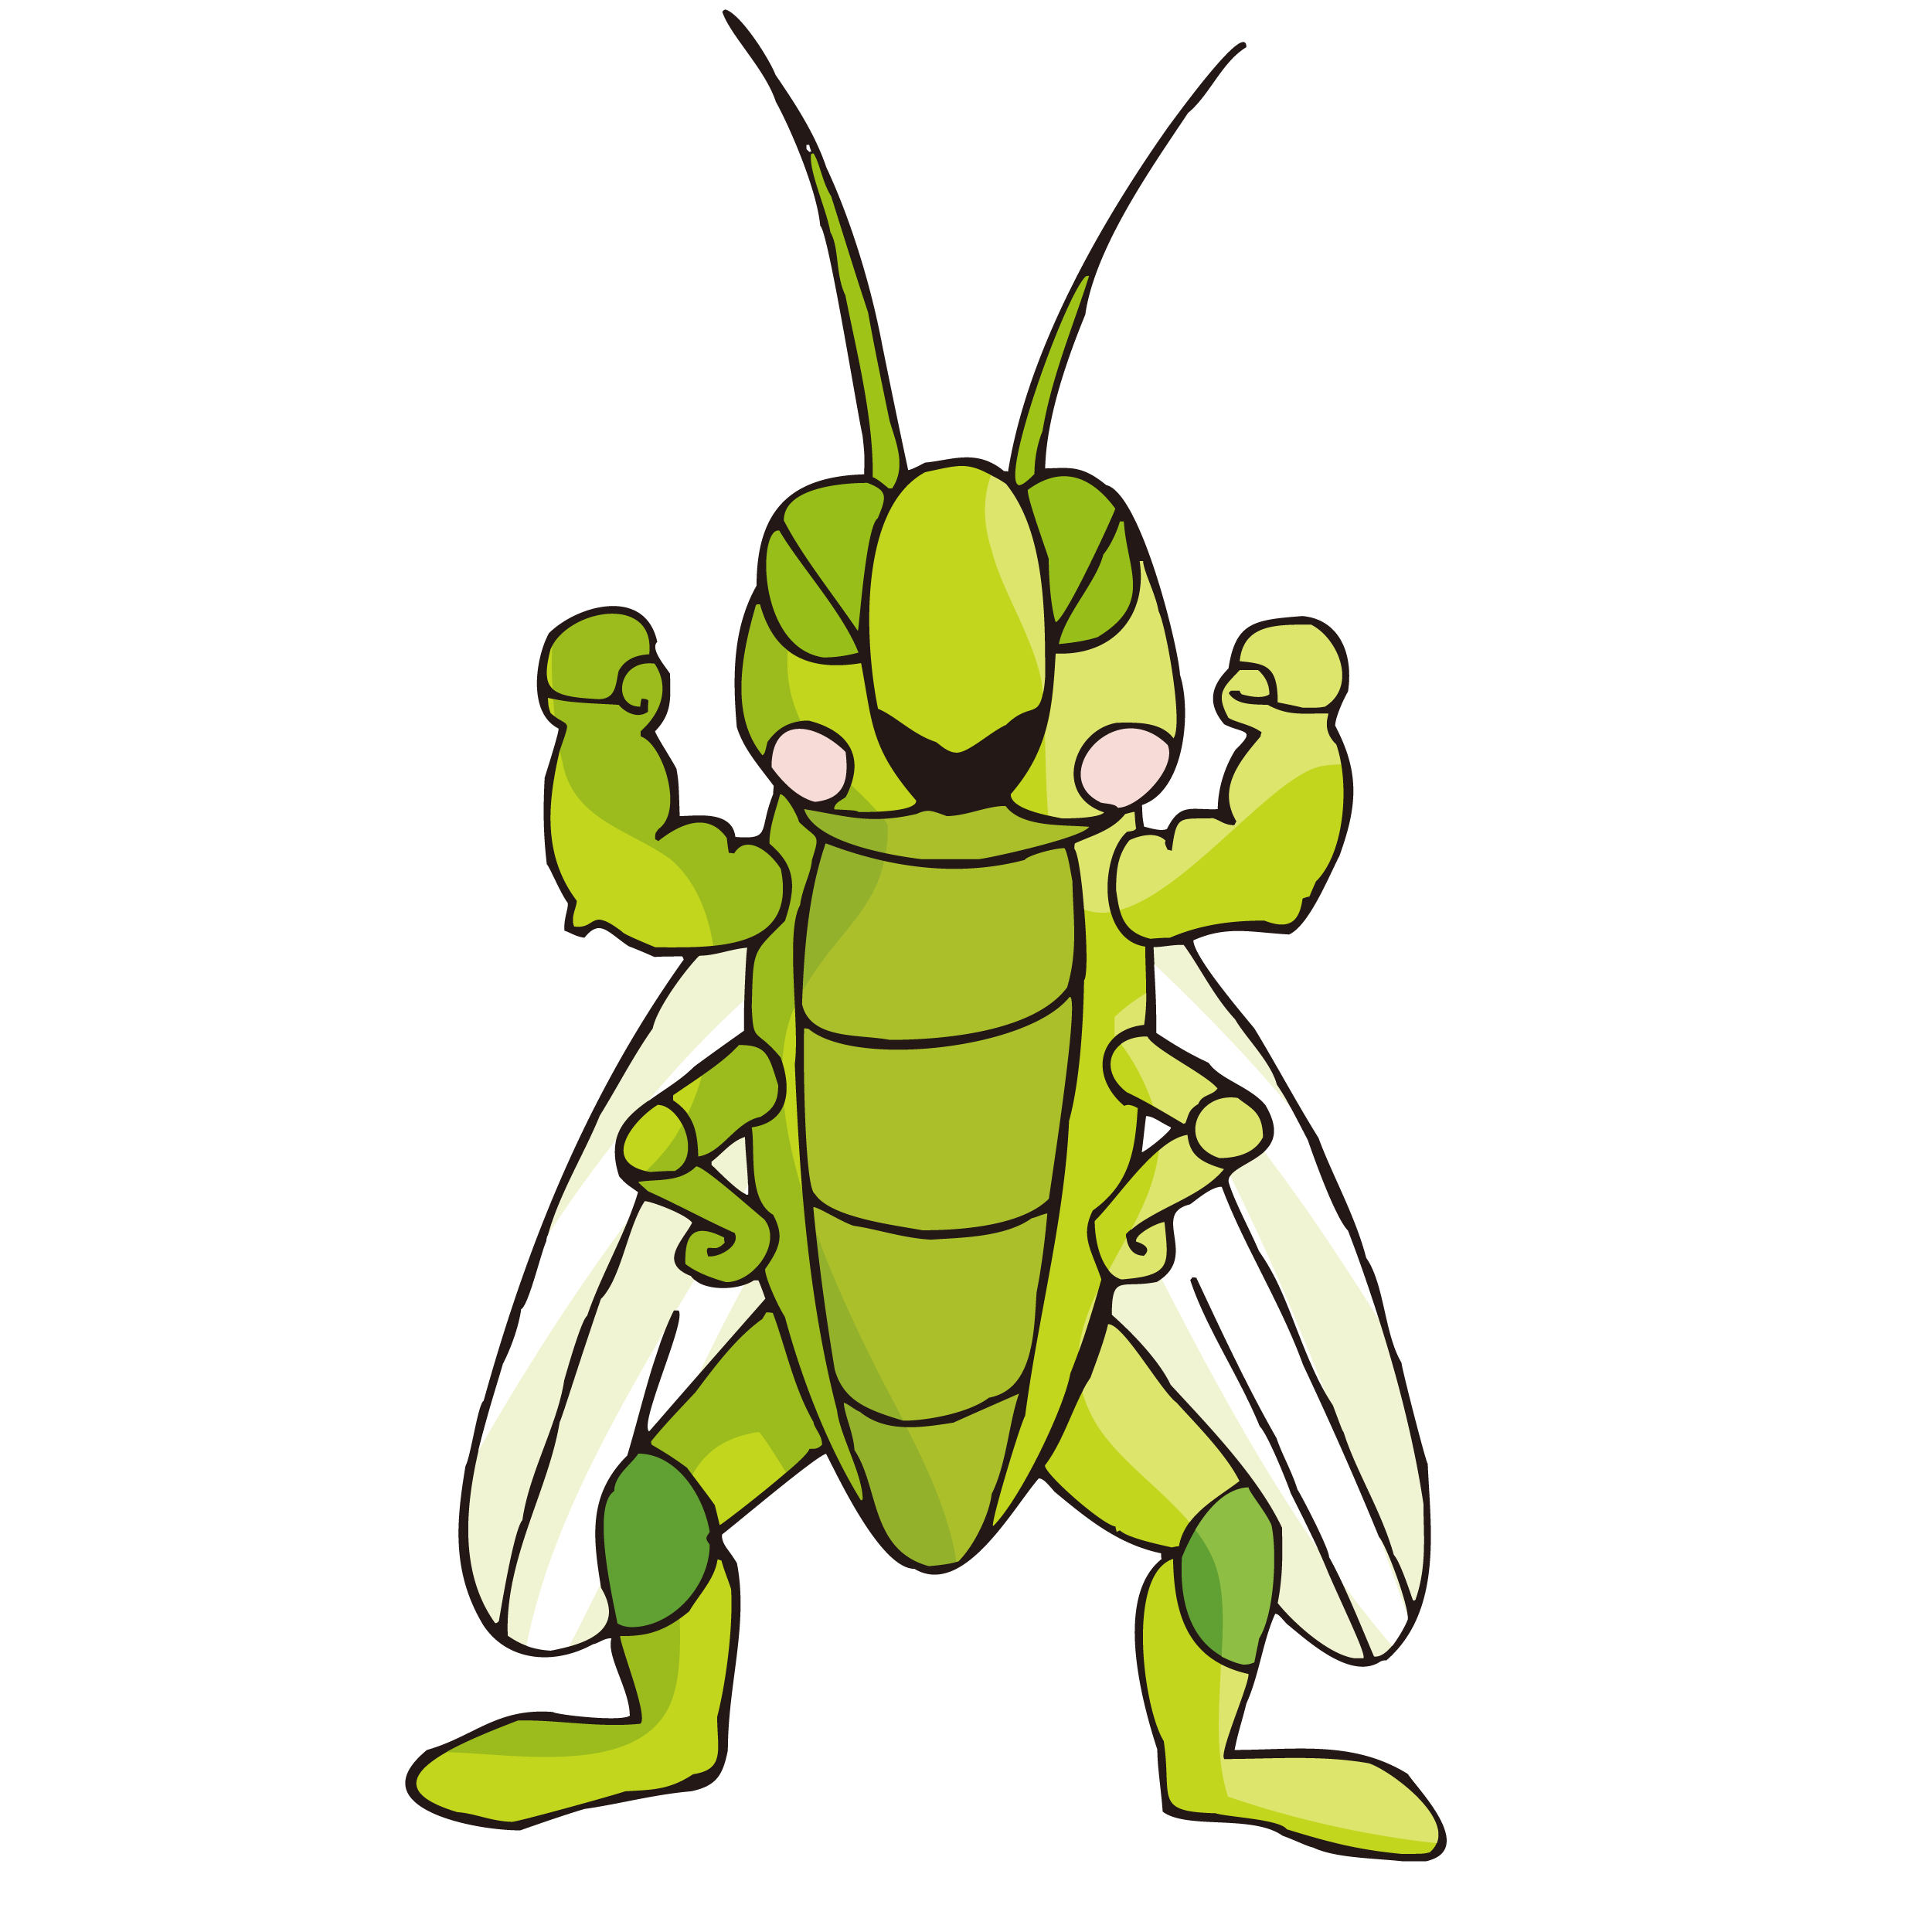 Cricket clipart. Cartoon images gallery for